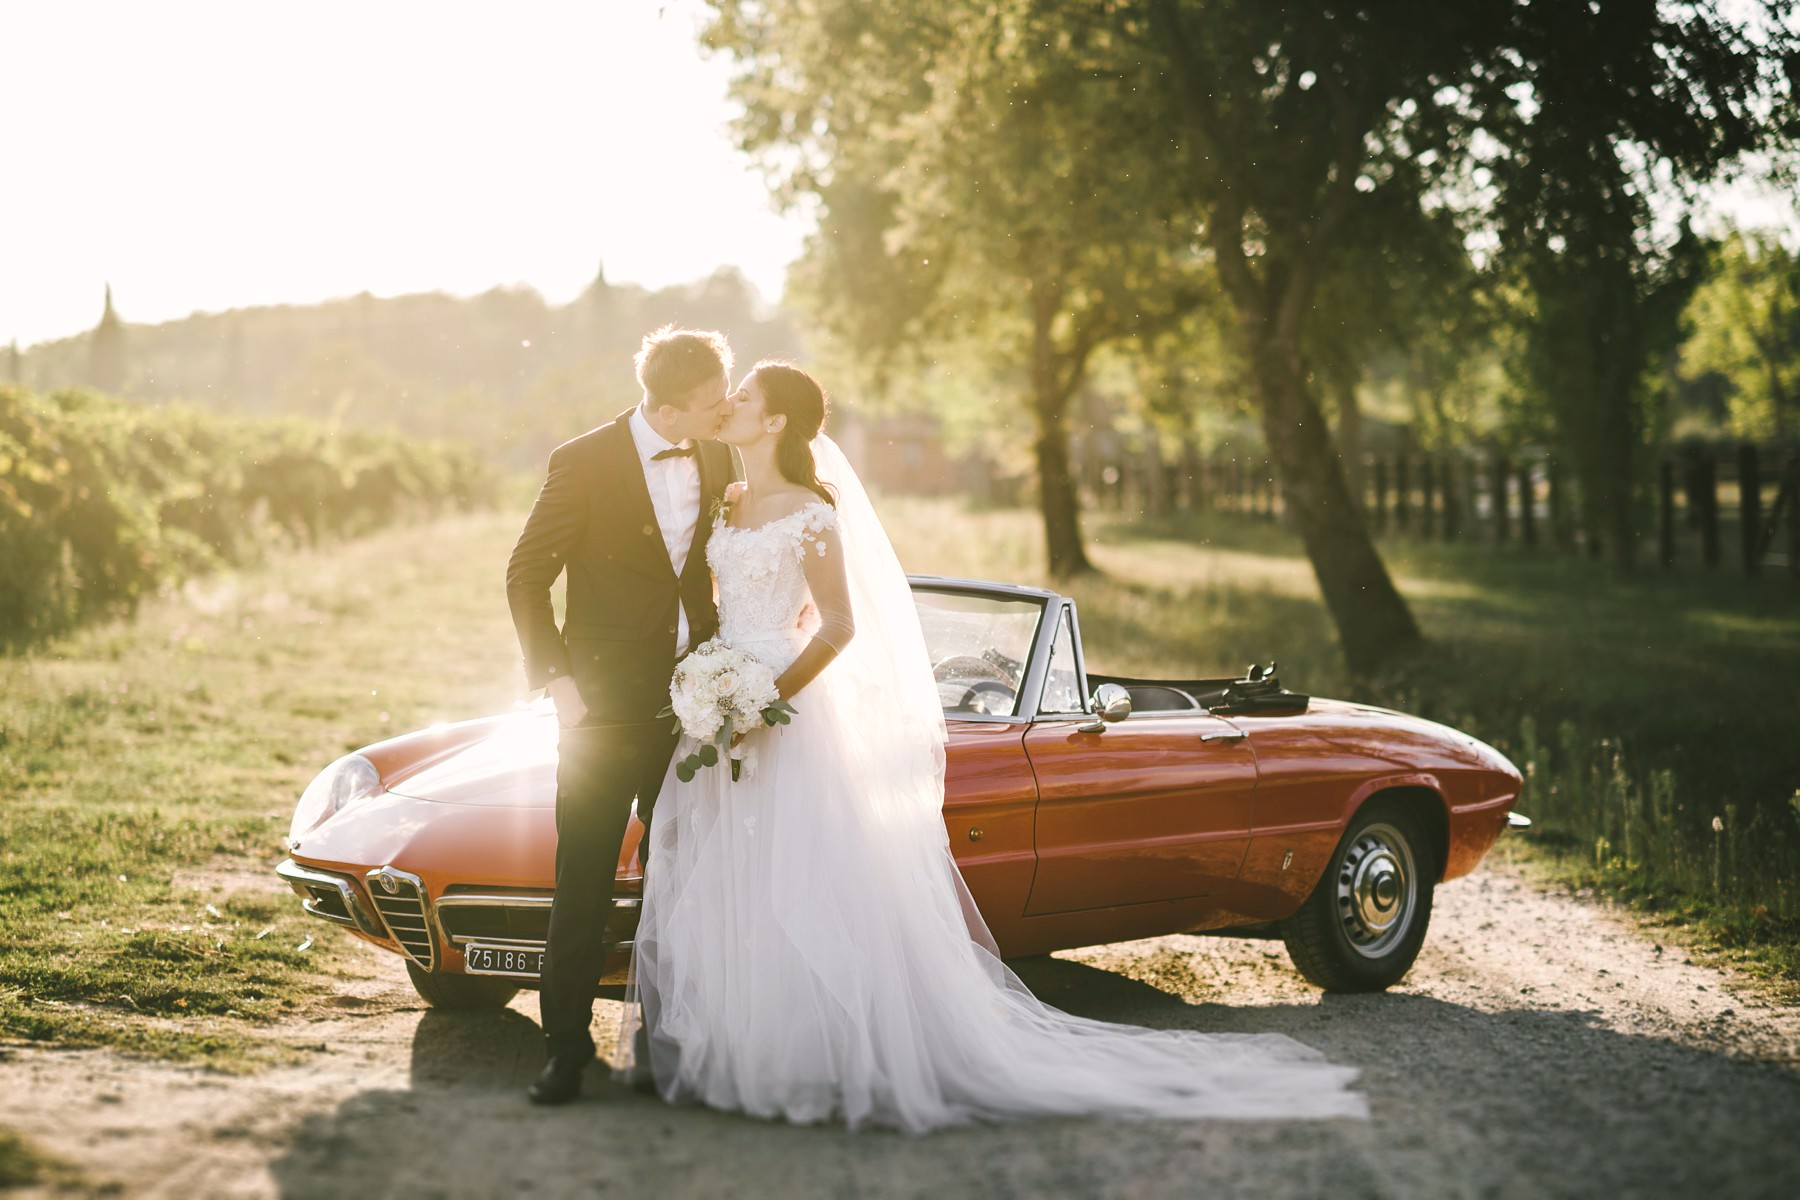 Bride and groom wedding portrait with old vintage car Alfa Romeo spider